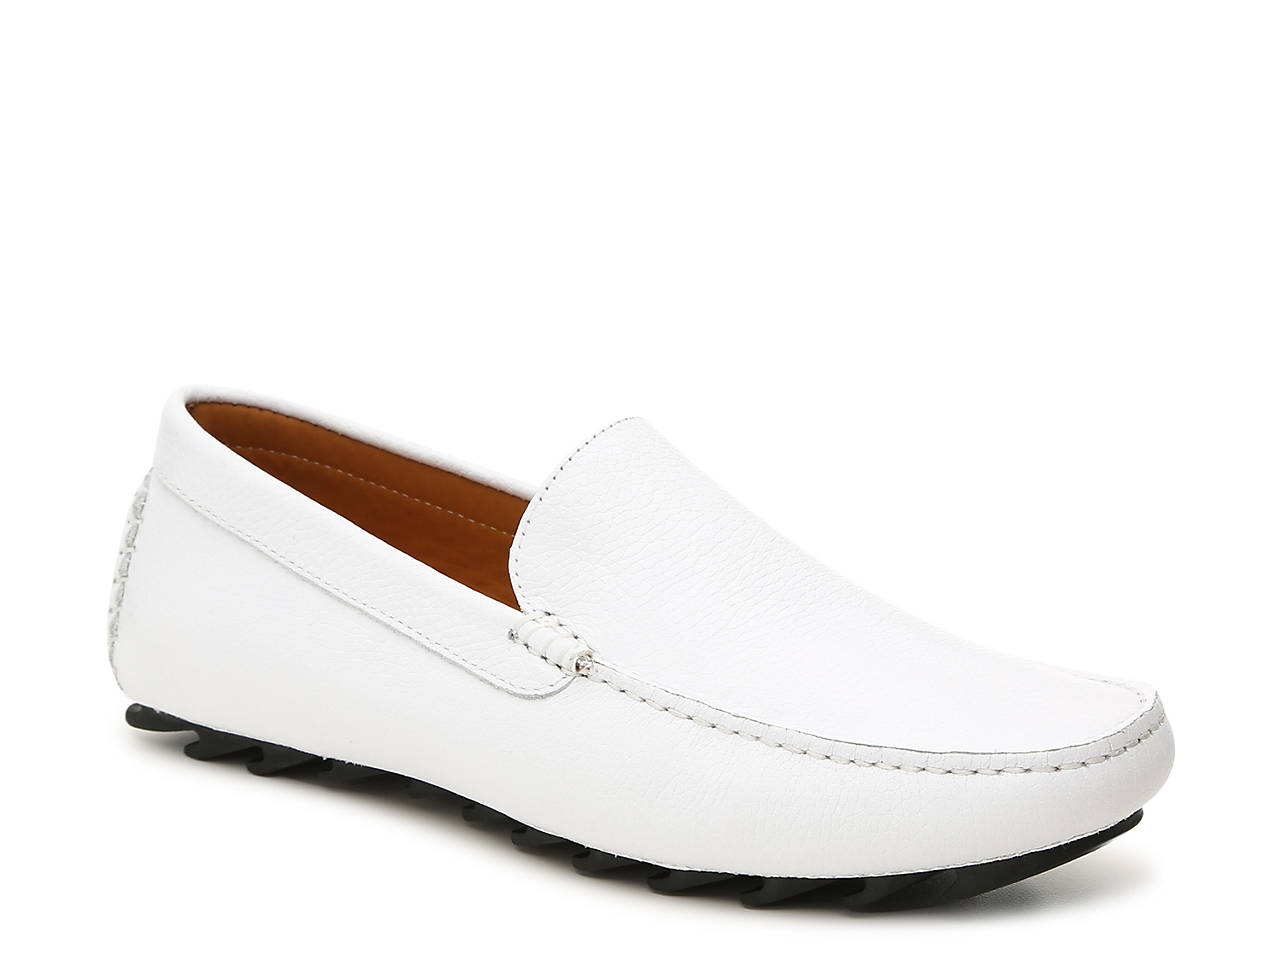 05105f63f9c Mercanti Fiorentini Leather Loafer Men s Shoes